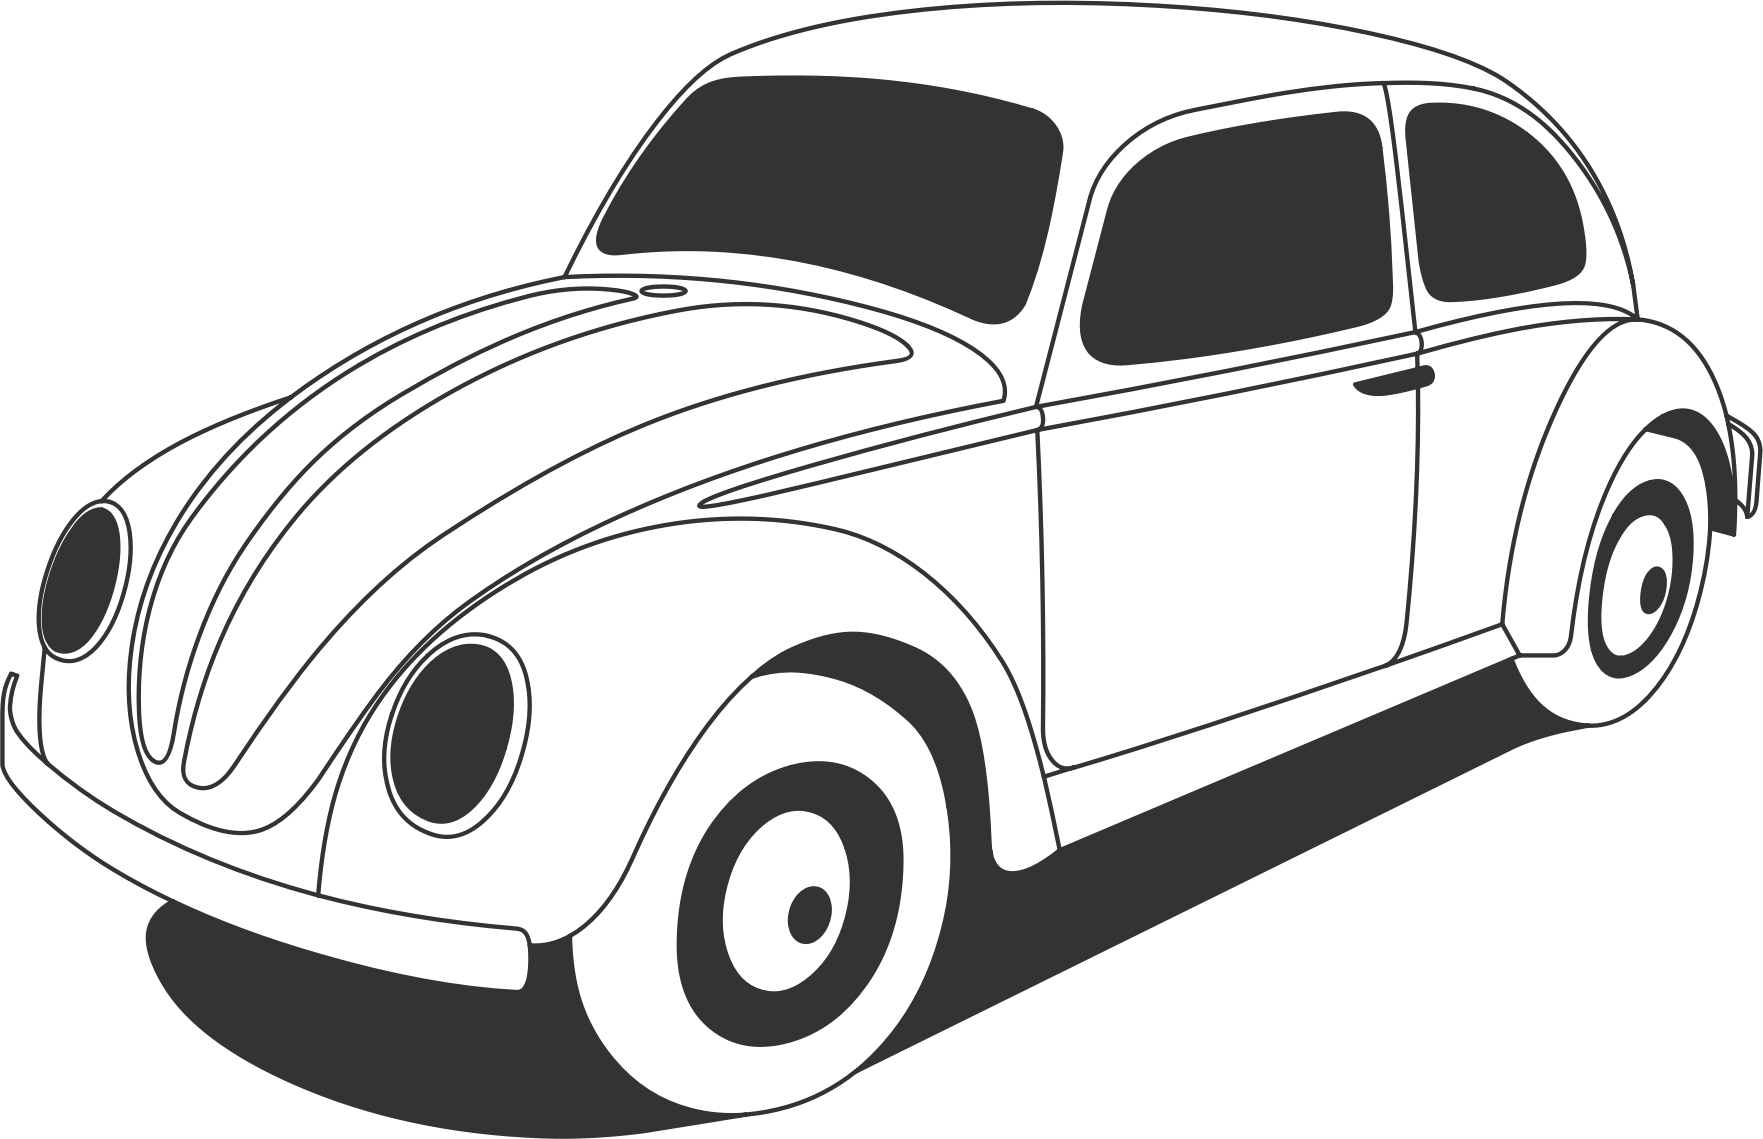 Classic Car clipart volkswagen bug Beetle Beetle VW Clipart Classic